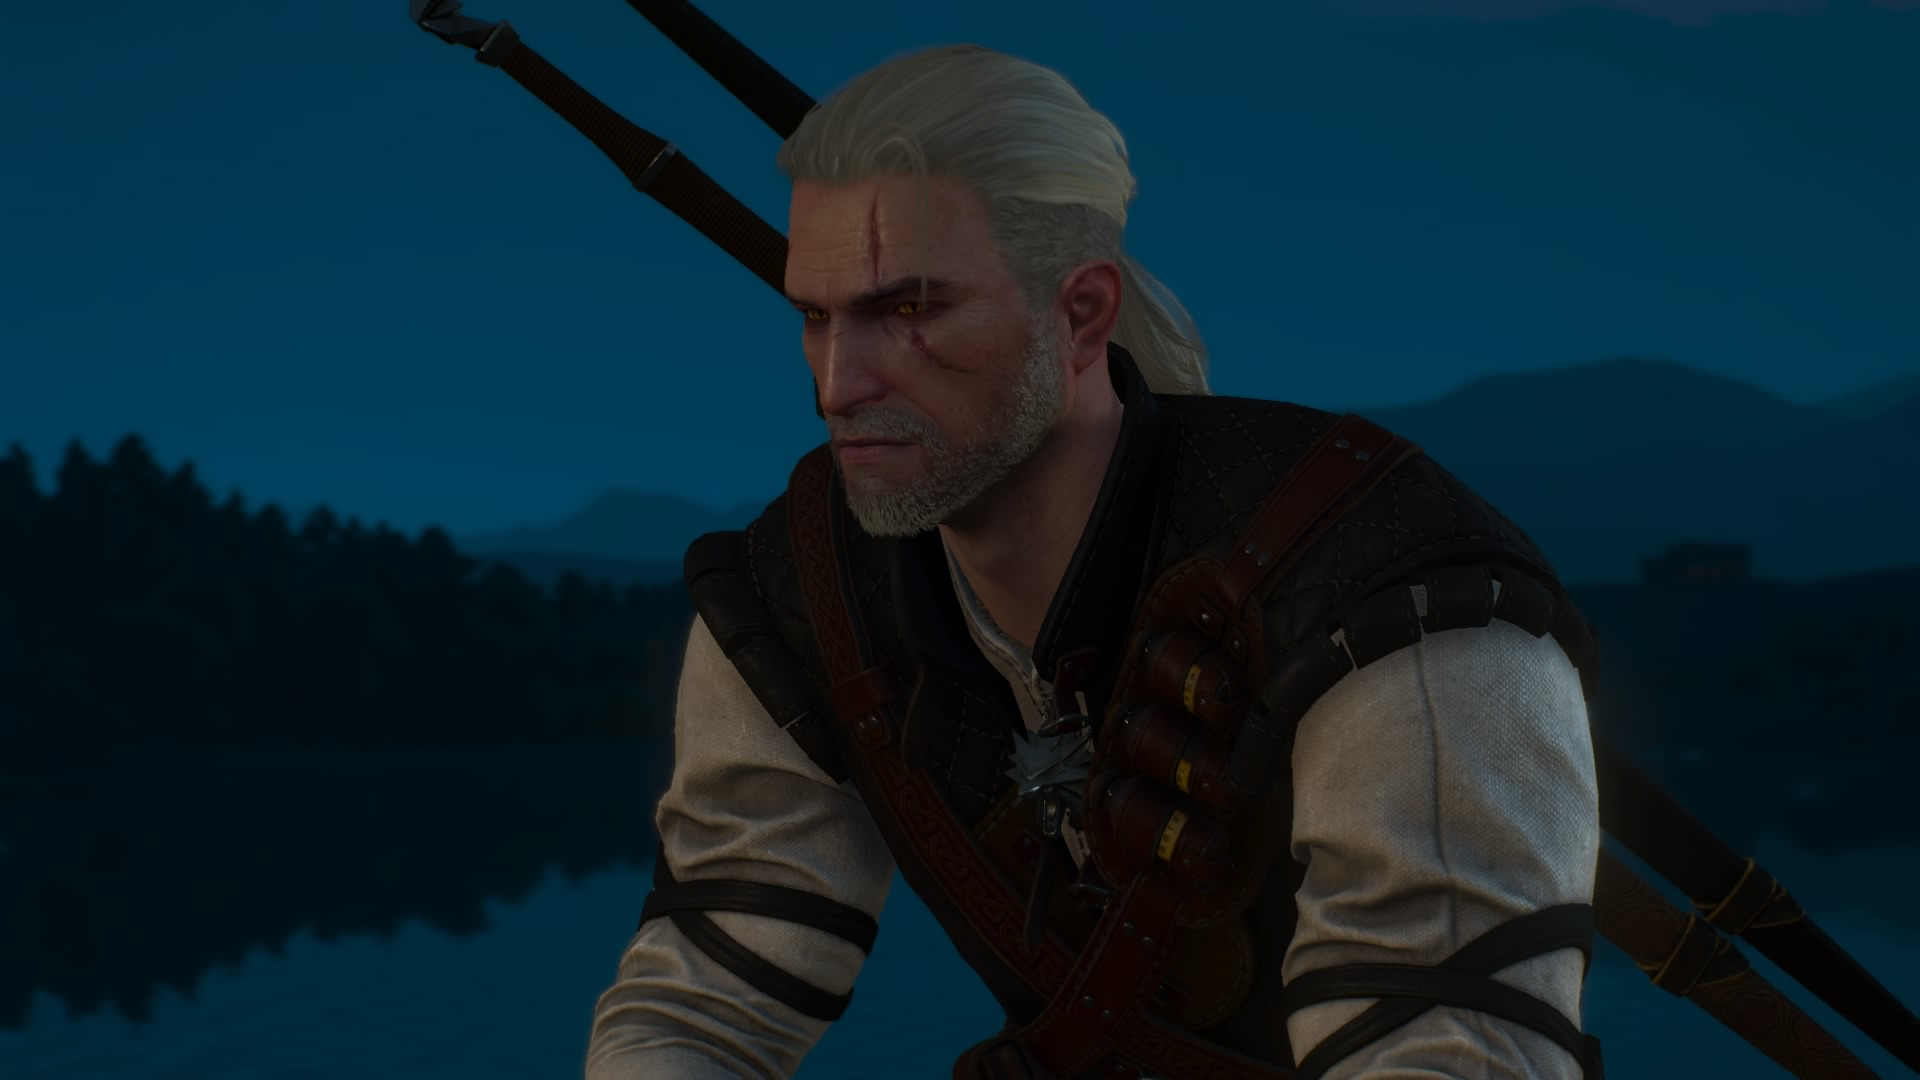 A close up of Geralt, a man with long white hair pulled back, as he sits by a lake in the woods. From The Witcher 3 video game.